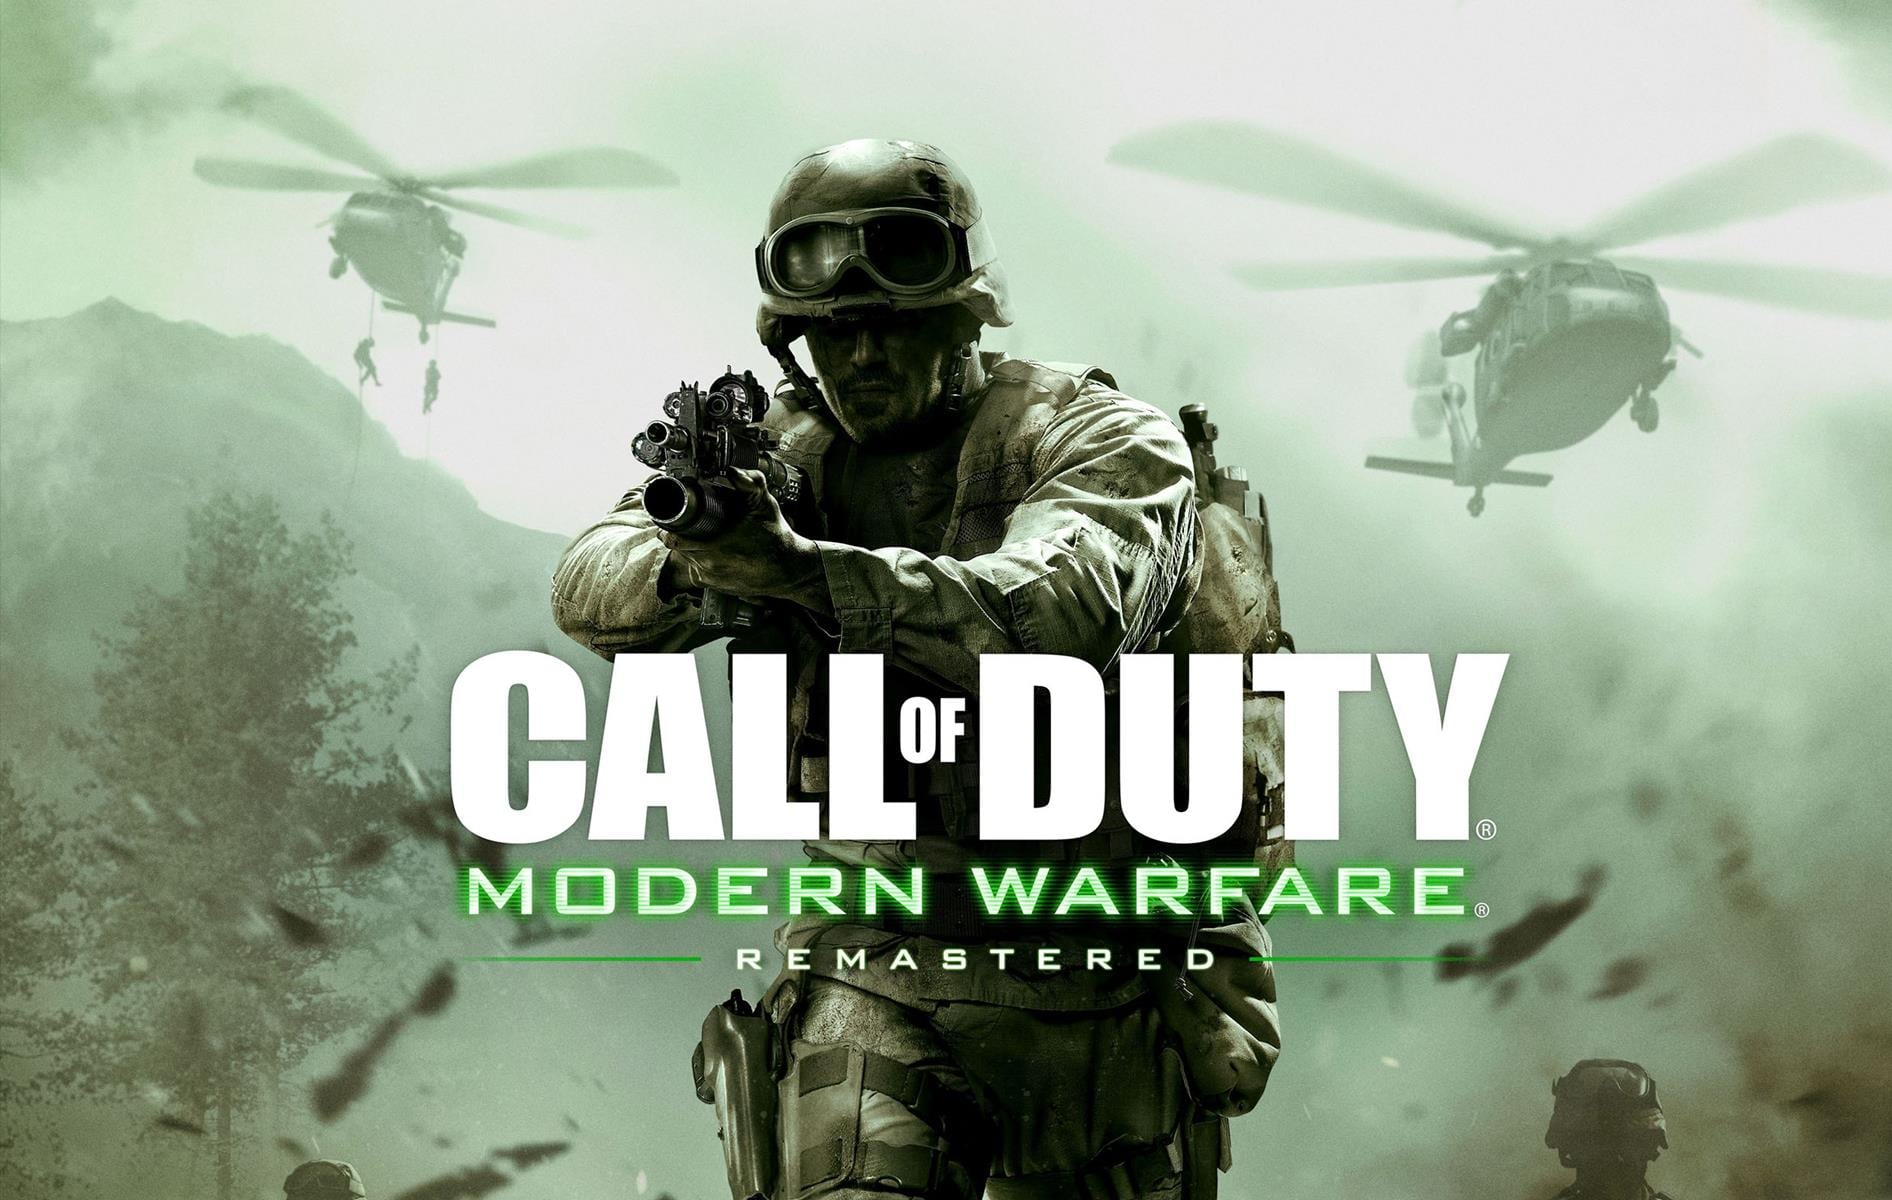 Call of Duty Modern Warfare Remastered Free Download